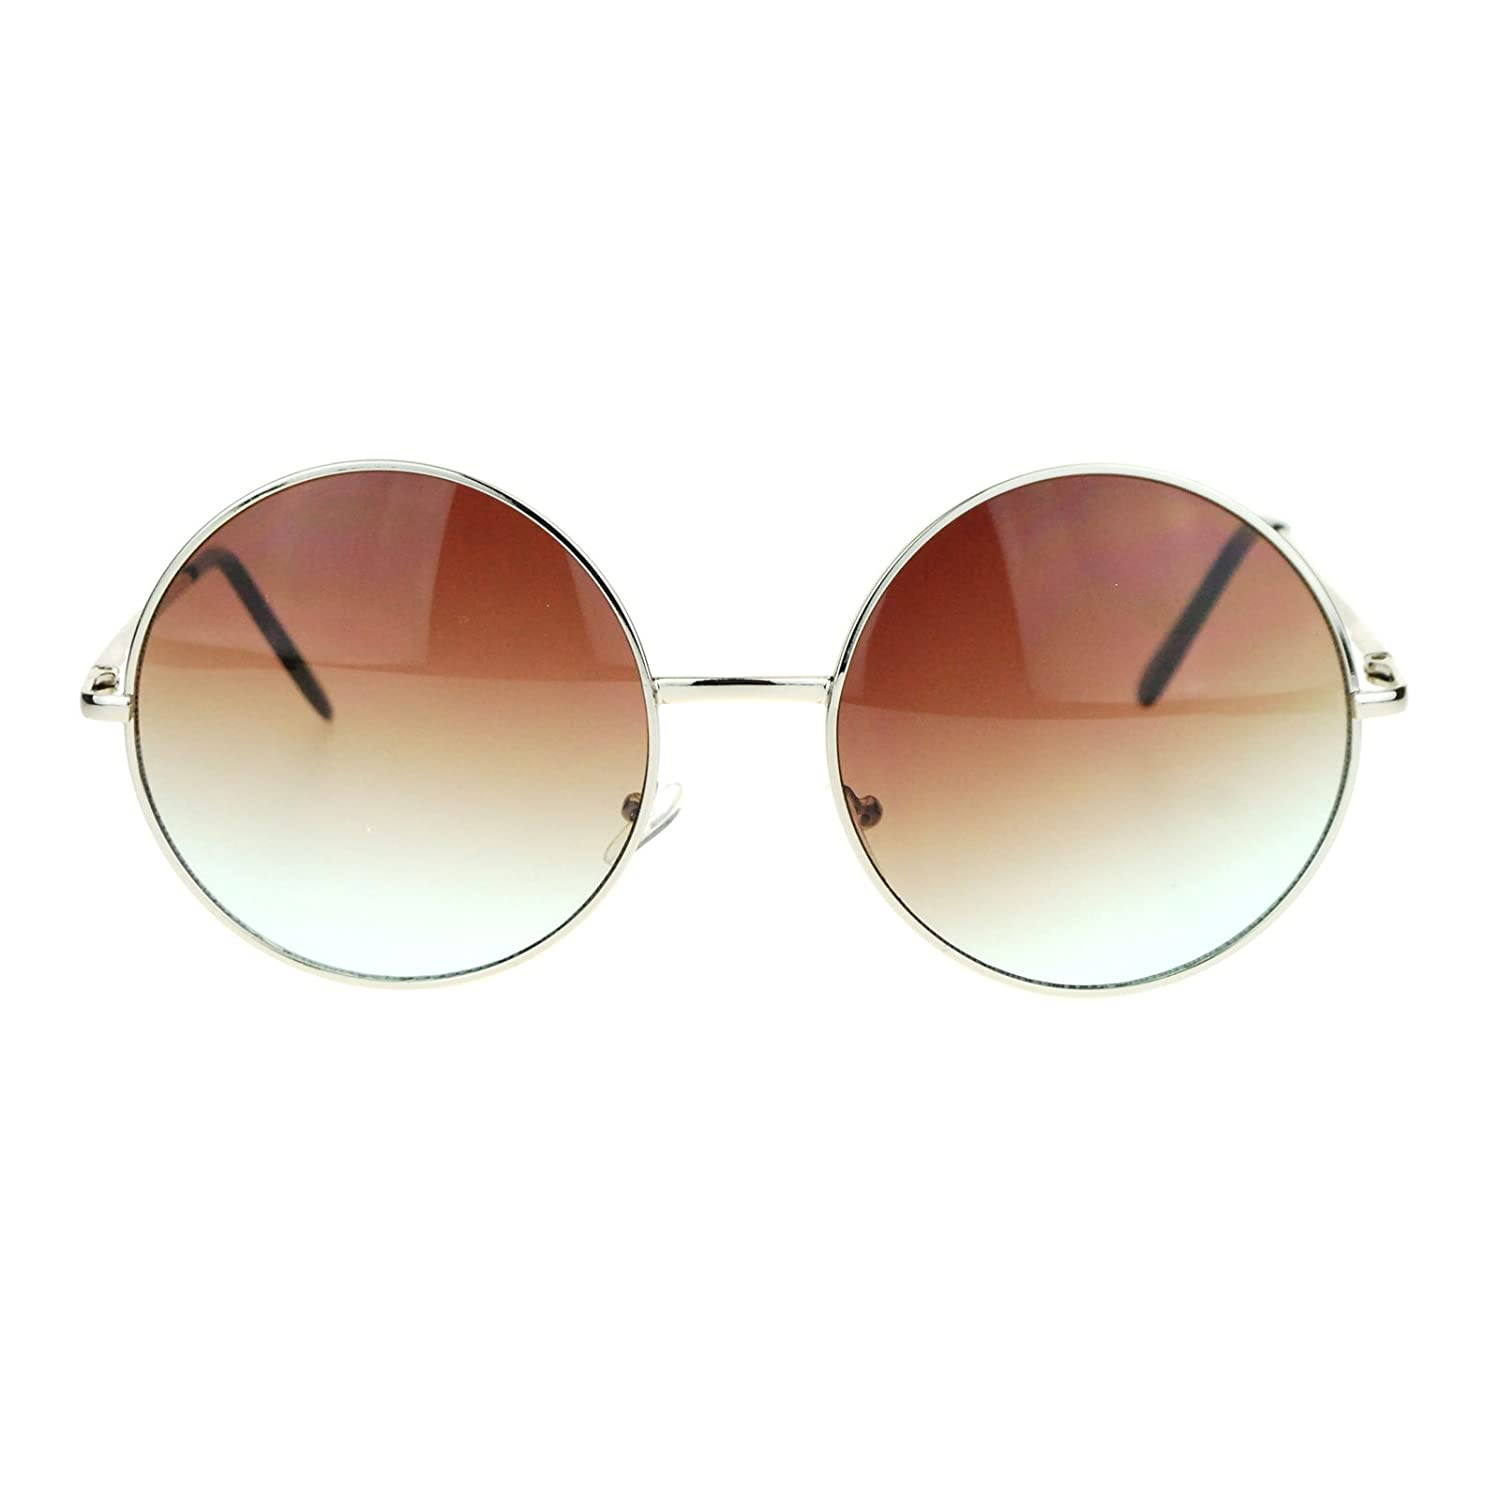 Hippie Retro Groovy Gradient Oversize Circle Lens Round Lennon Sunglasses ss3405mh-bl